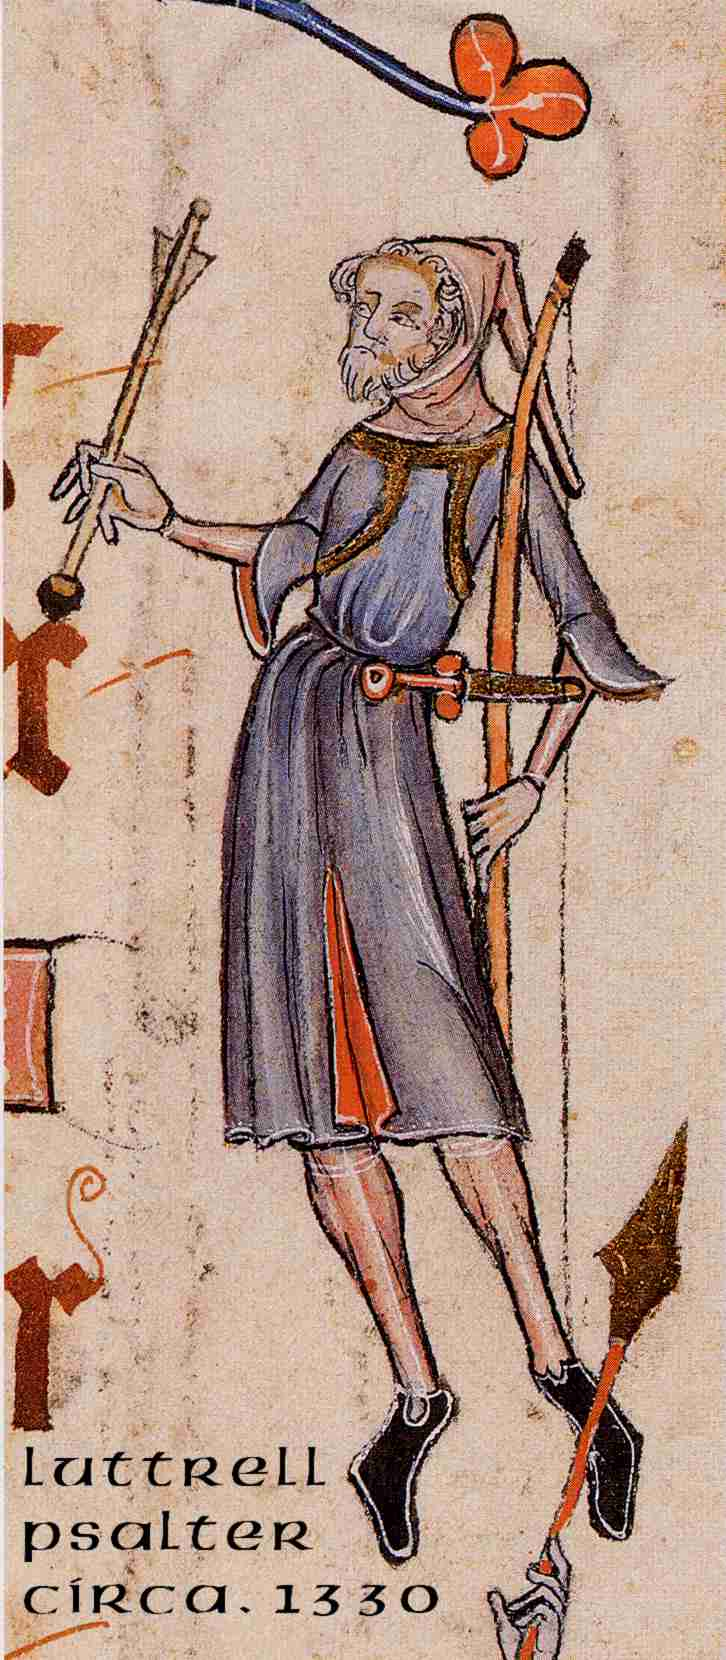 Archer from the Luttrell Psalter, around 1330.